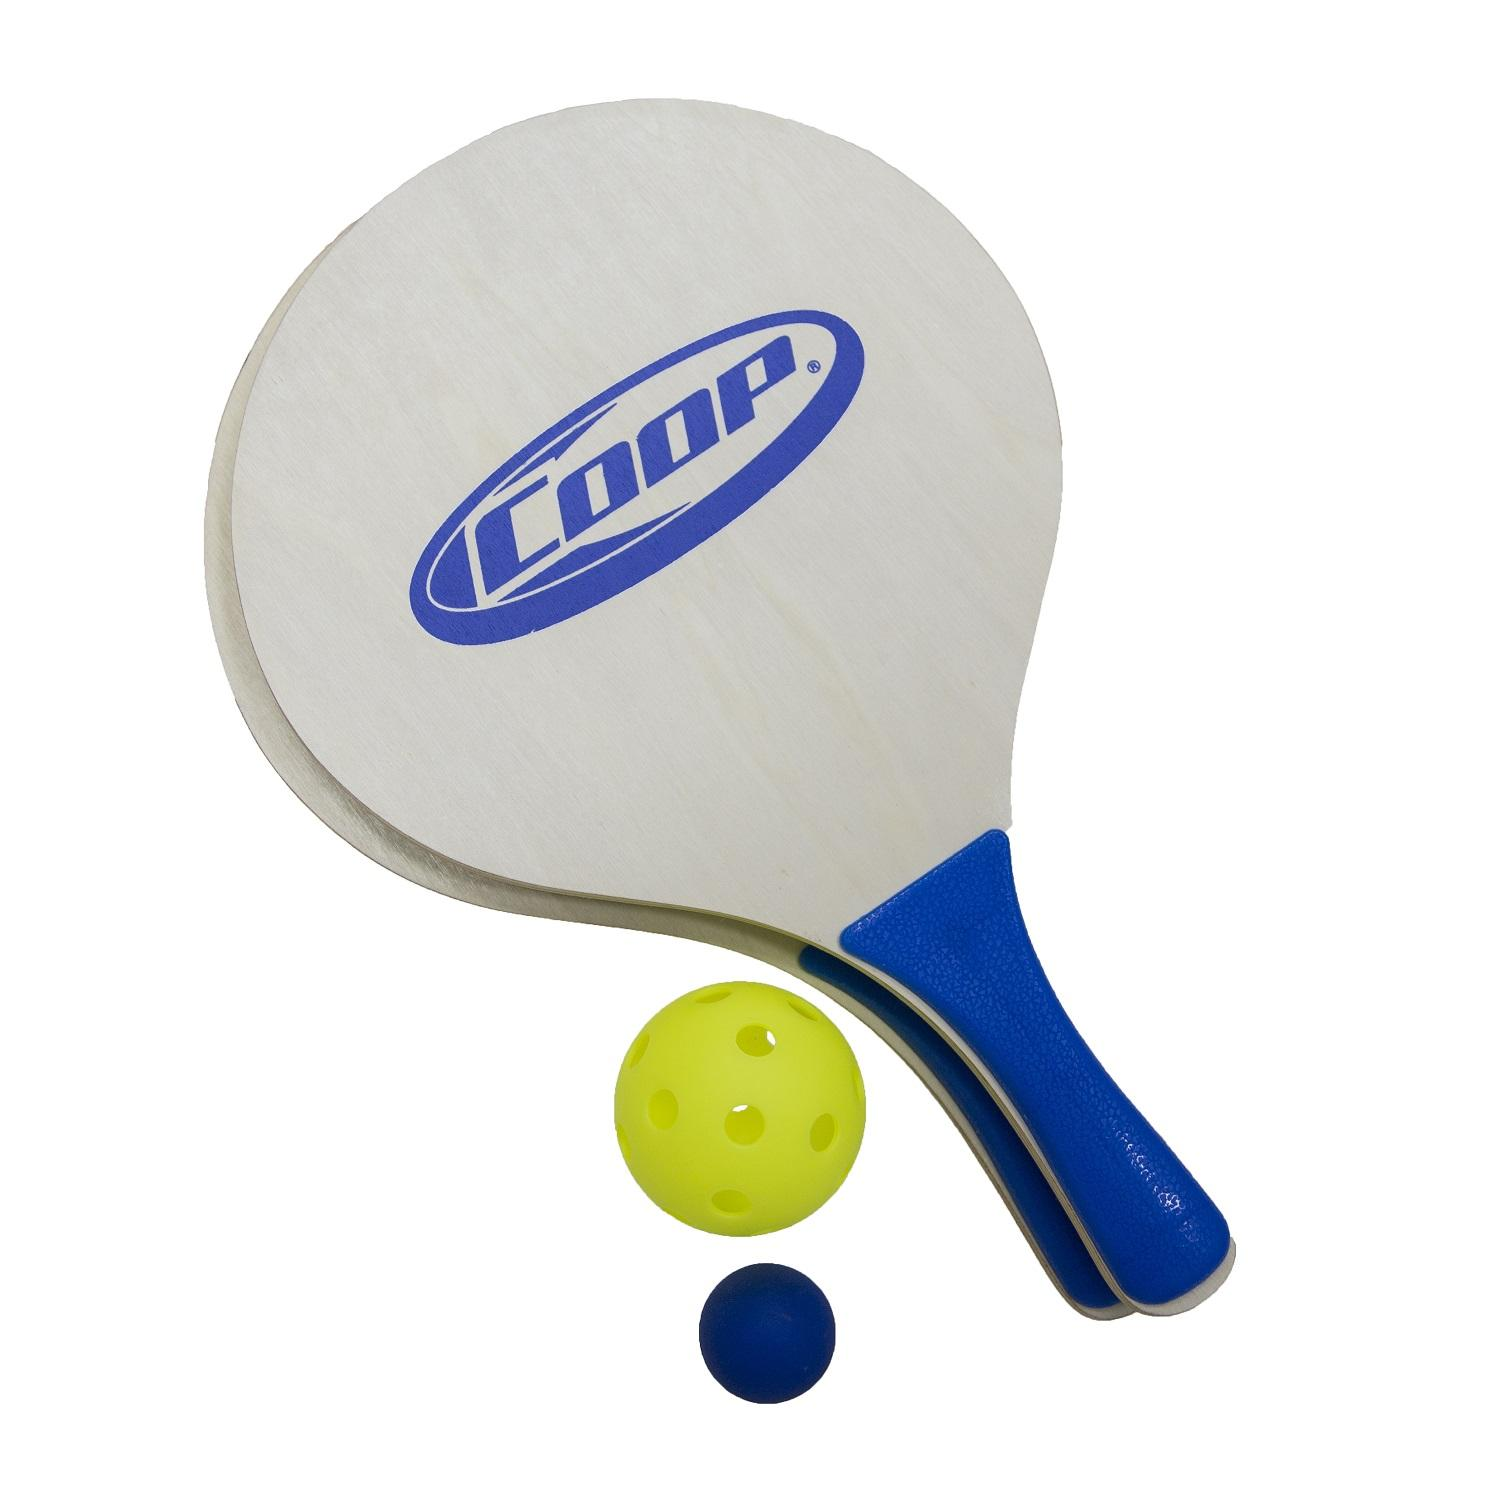 Paddle and Yellow Pickle Ball Classic Outdoor Yard Game